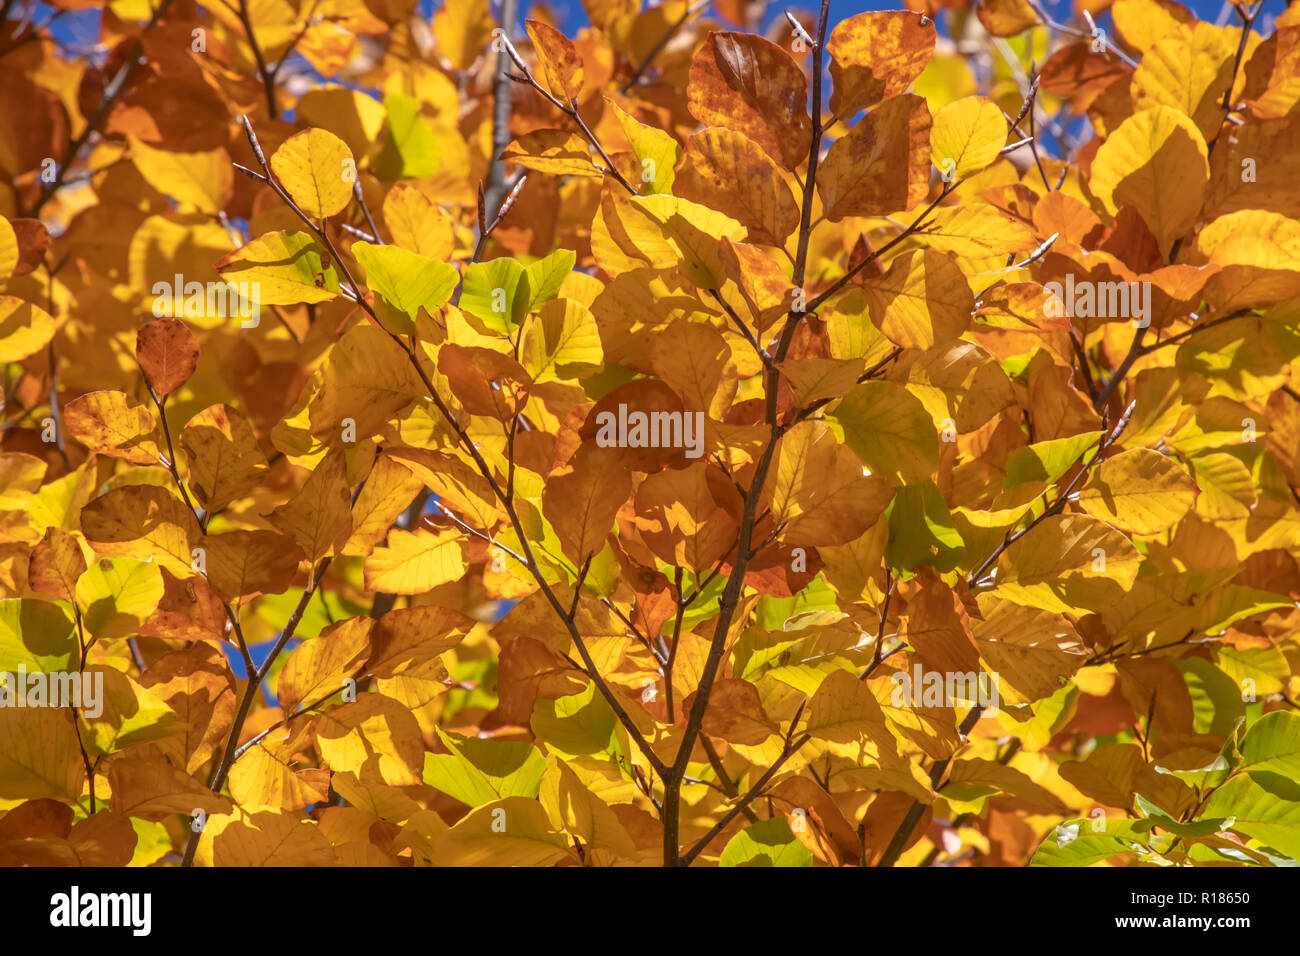 Abstract background with golden, yellow and brown autumn leaves against a blue sky. Greece - Stock Image